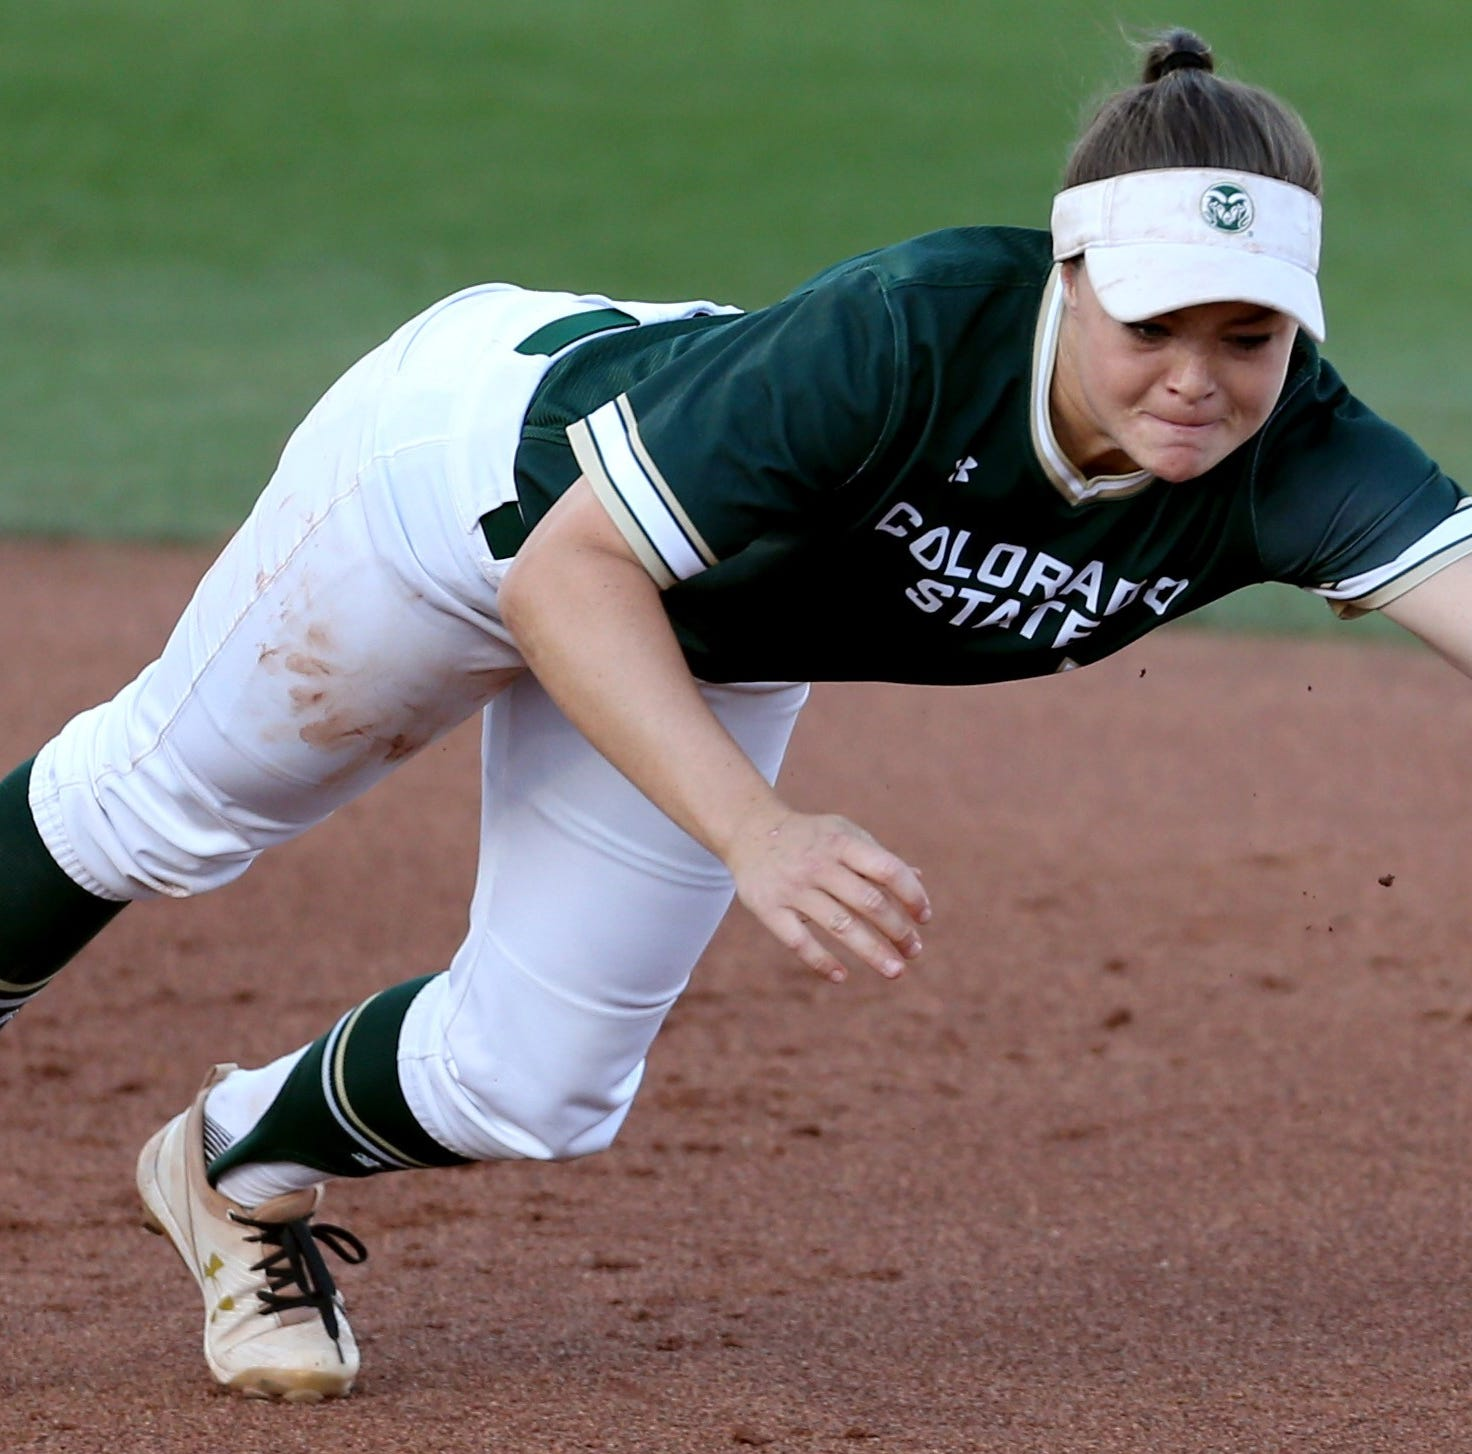 Colorado State softball's #25strong season ends in NCAA regionals